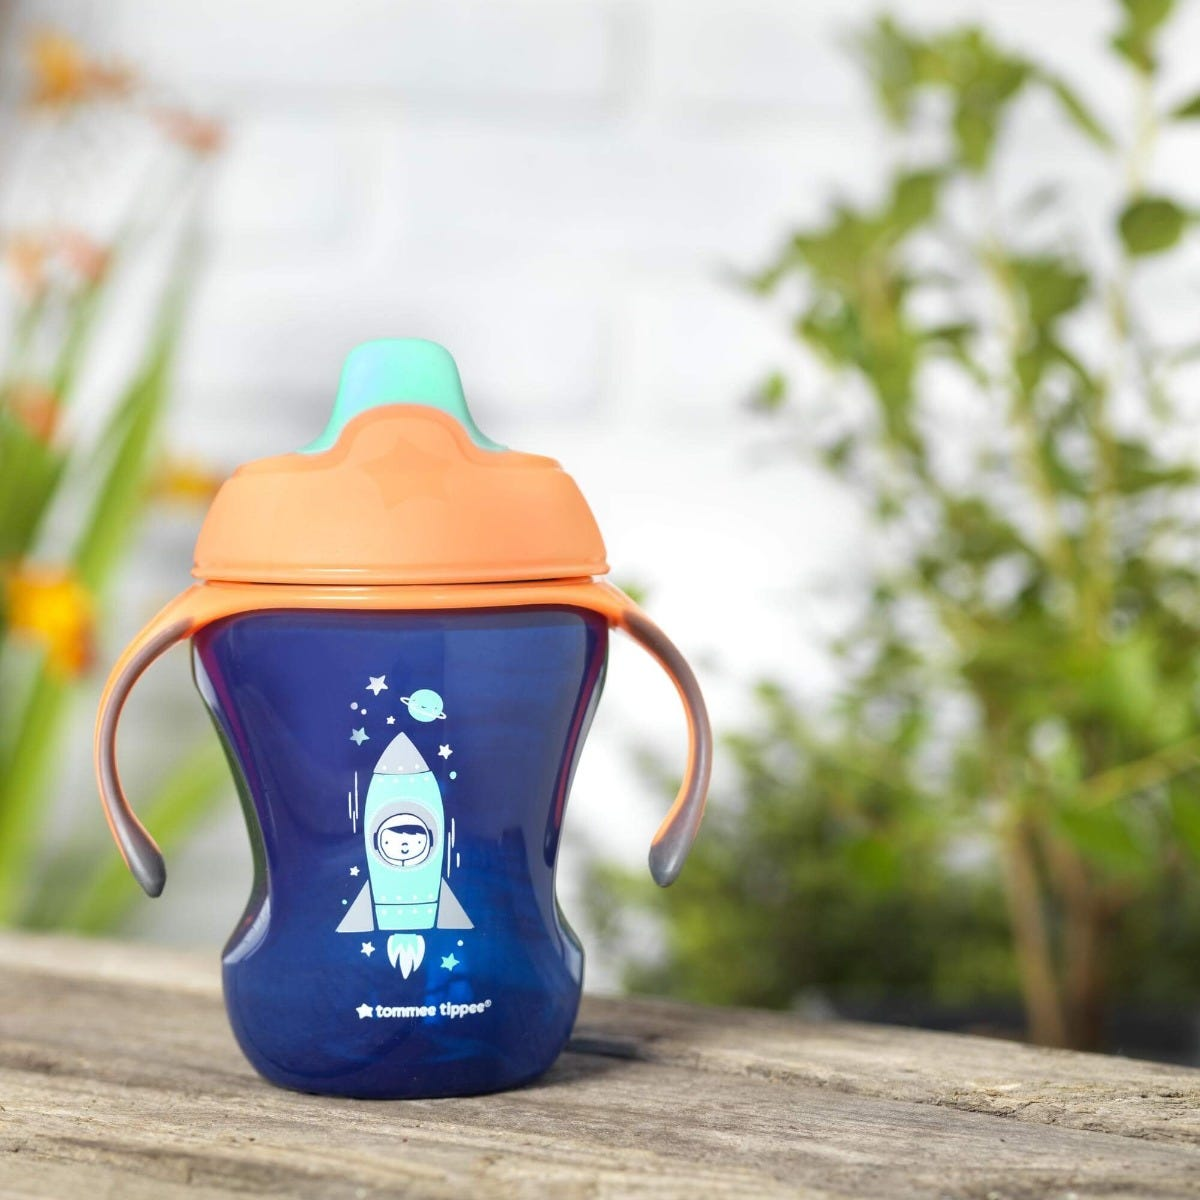 Tommee Tippee Weaning Sippee Cup 4m+ Moon /& Star